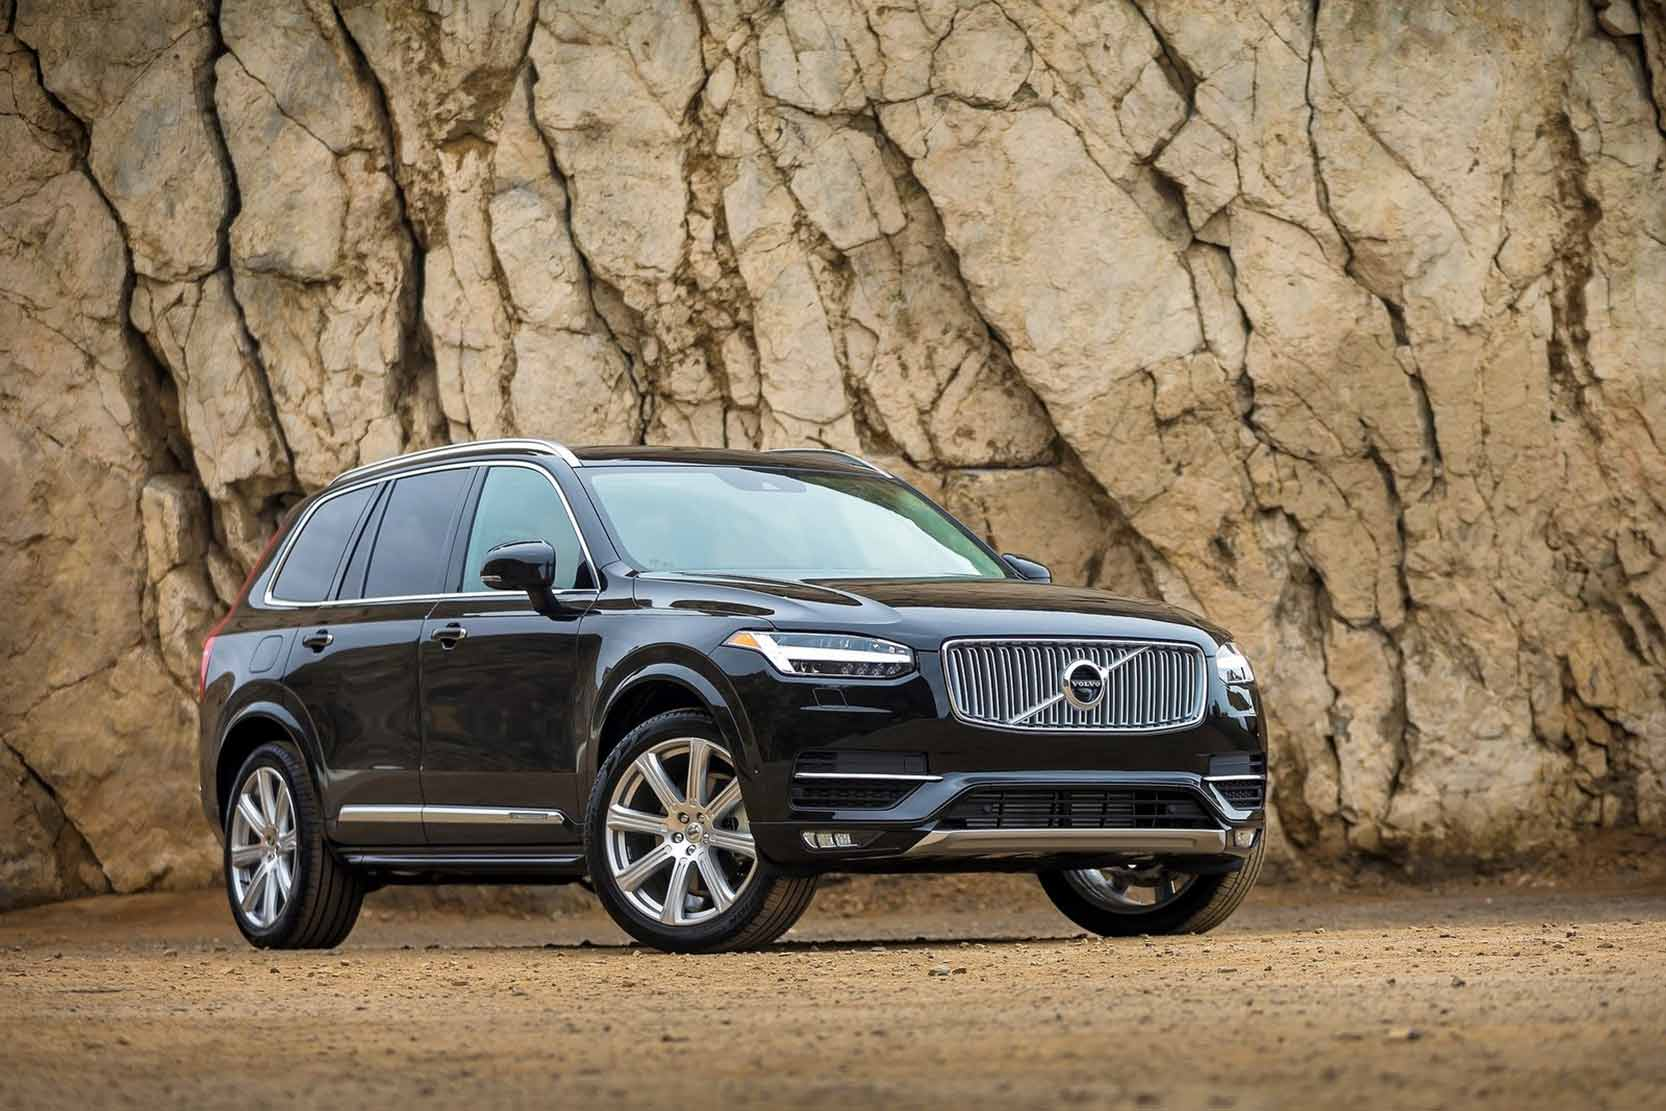 fiche technique volvo xc90 t8 awd twin engine 2017. Black Bedroom Furniture Sets. Home Design Ideas